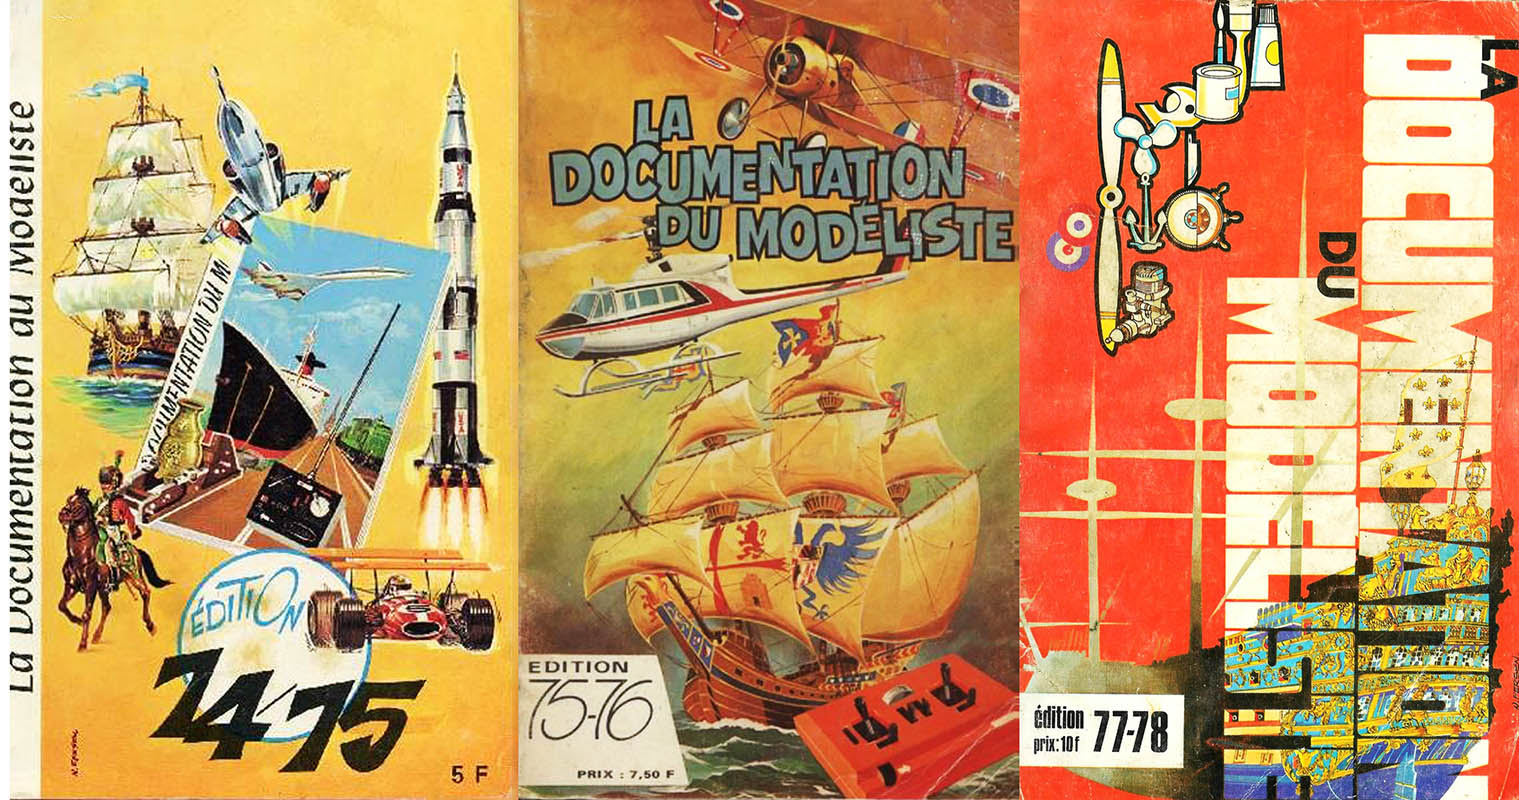 """À la source des inventions"" : catalogues 1974/1975, 1975/1976, 1977/1978 - La documentation du modéliste."